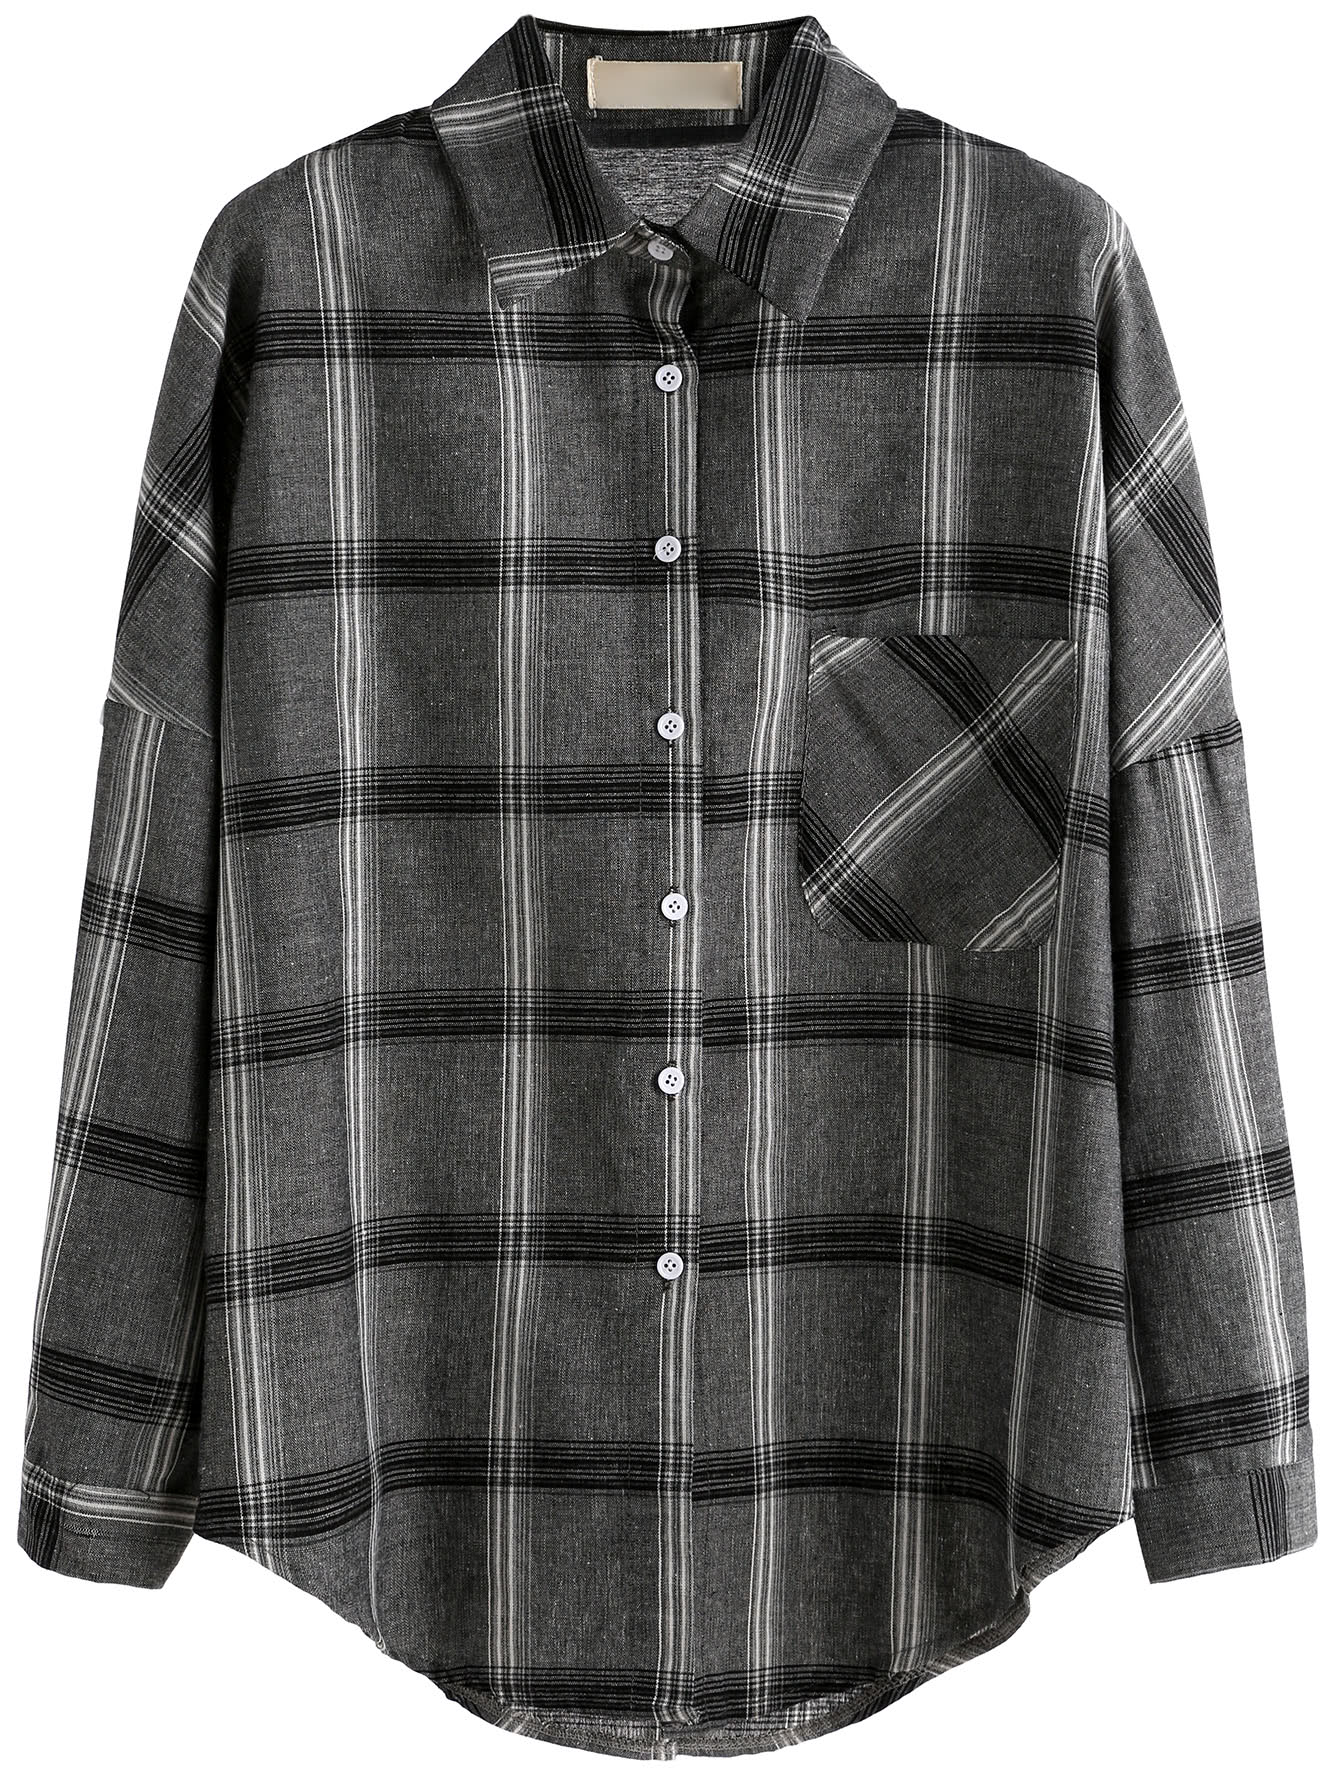 Grey Plaid Drop Shoulder Pocket ShirtGrey Plaid Drop Shoulder Pocket Shirt<br><br>color: Grey<br>size: one-size